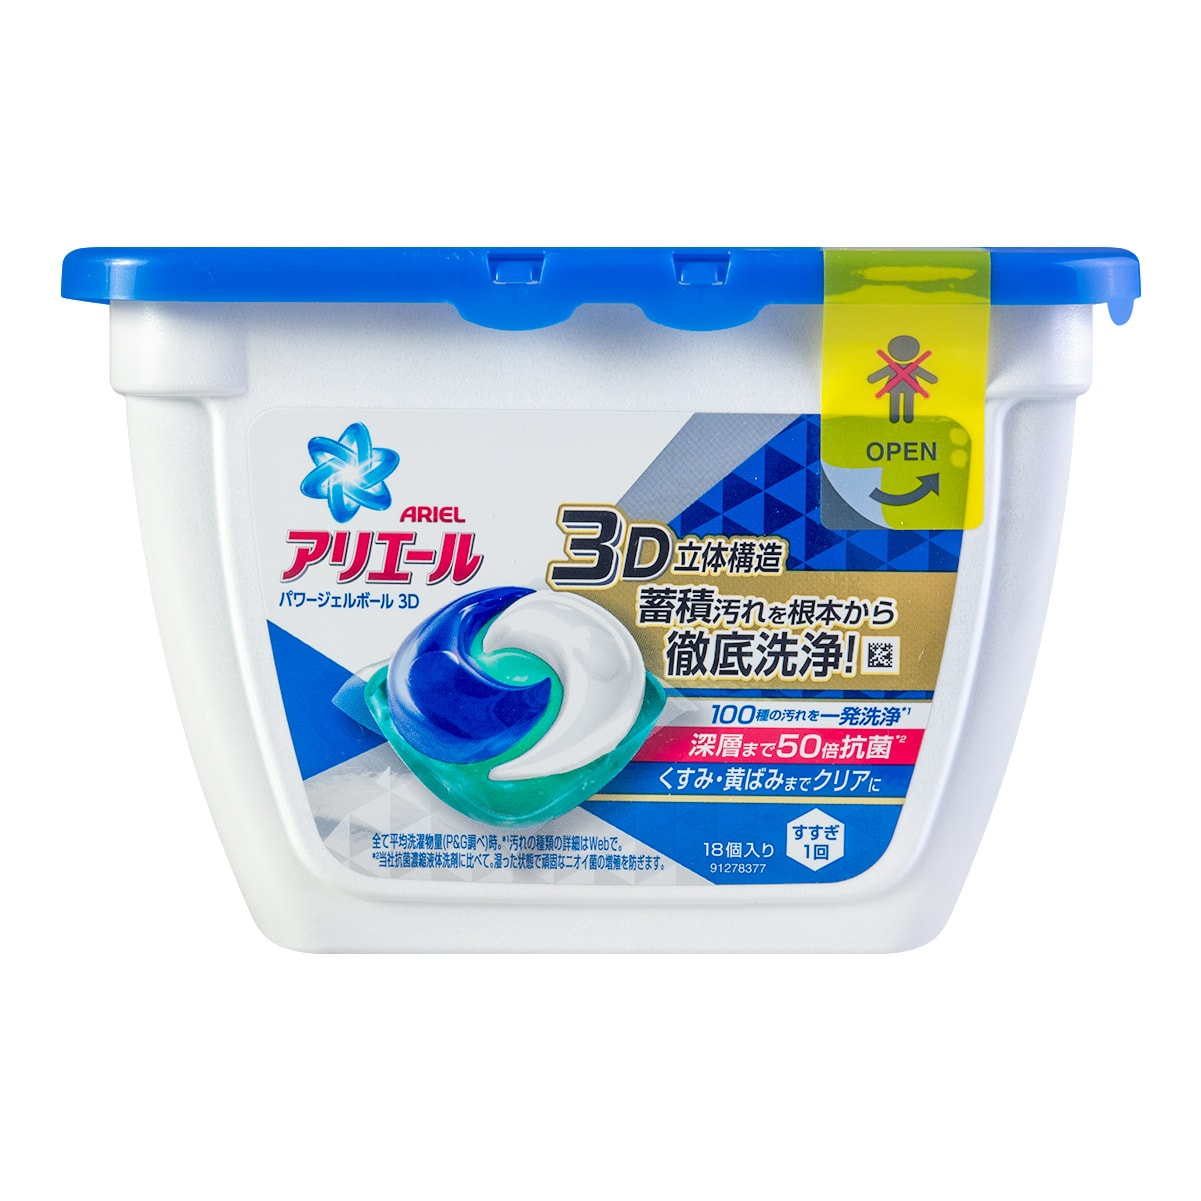 Yamibuy.com:Customer reviews:P&G Japan Laundry Wash Anti Bacterial Odor Free Detergent 3D Gel Ball #Elegant Flower 18tablets 356g